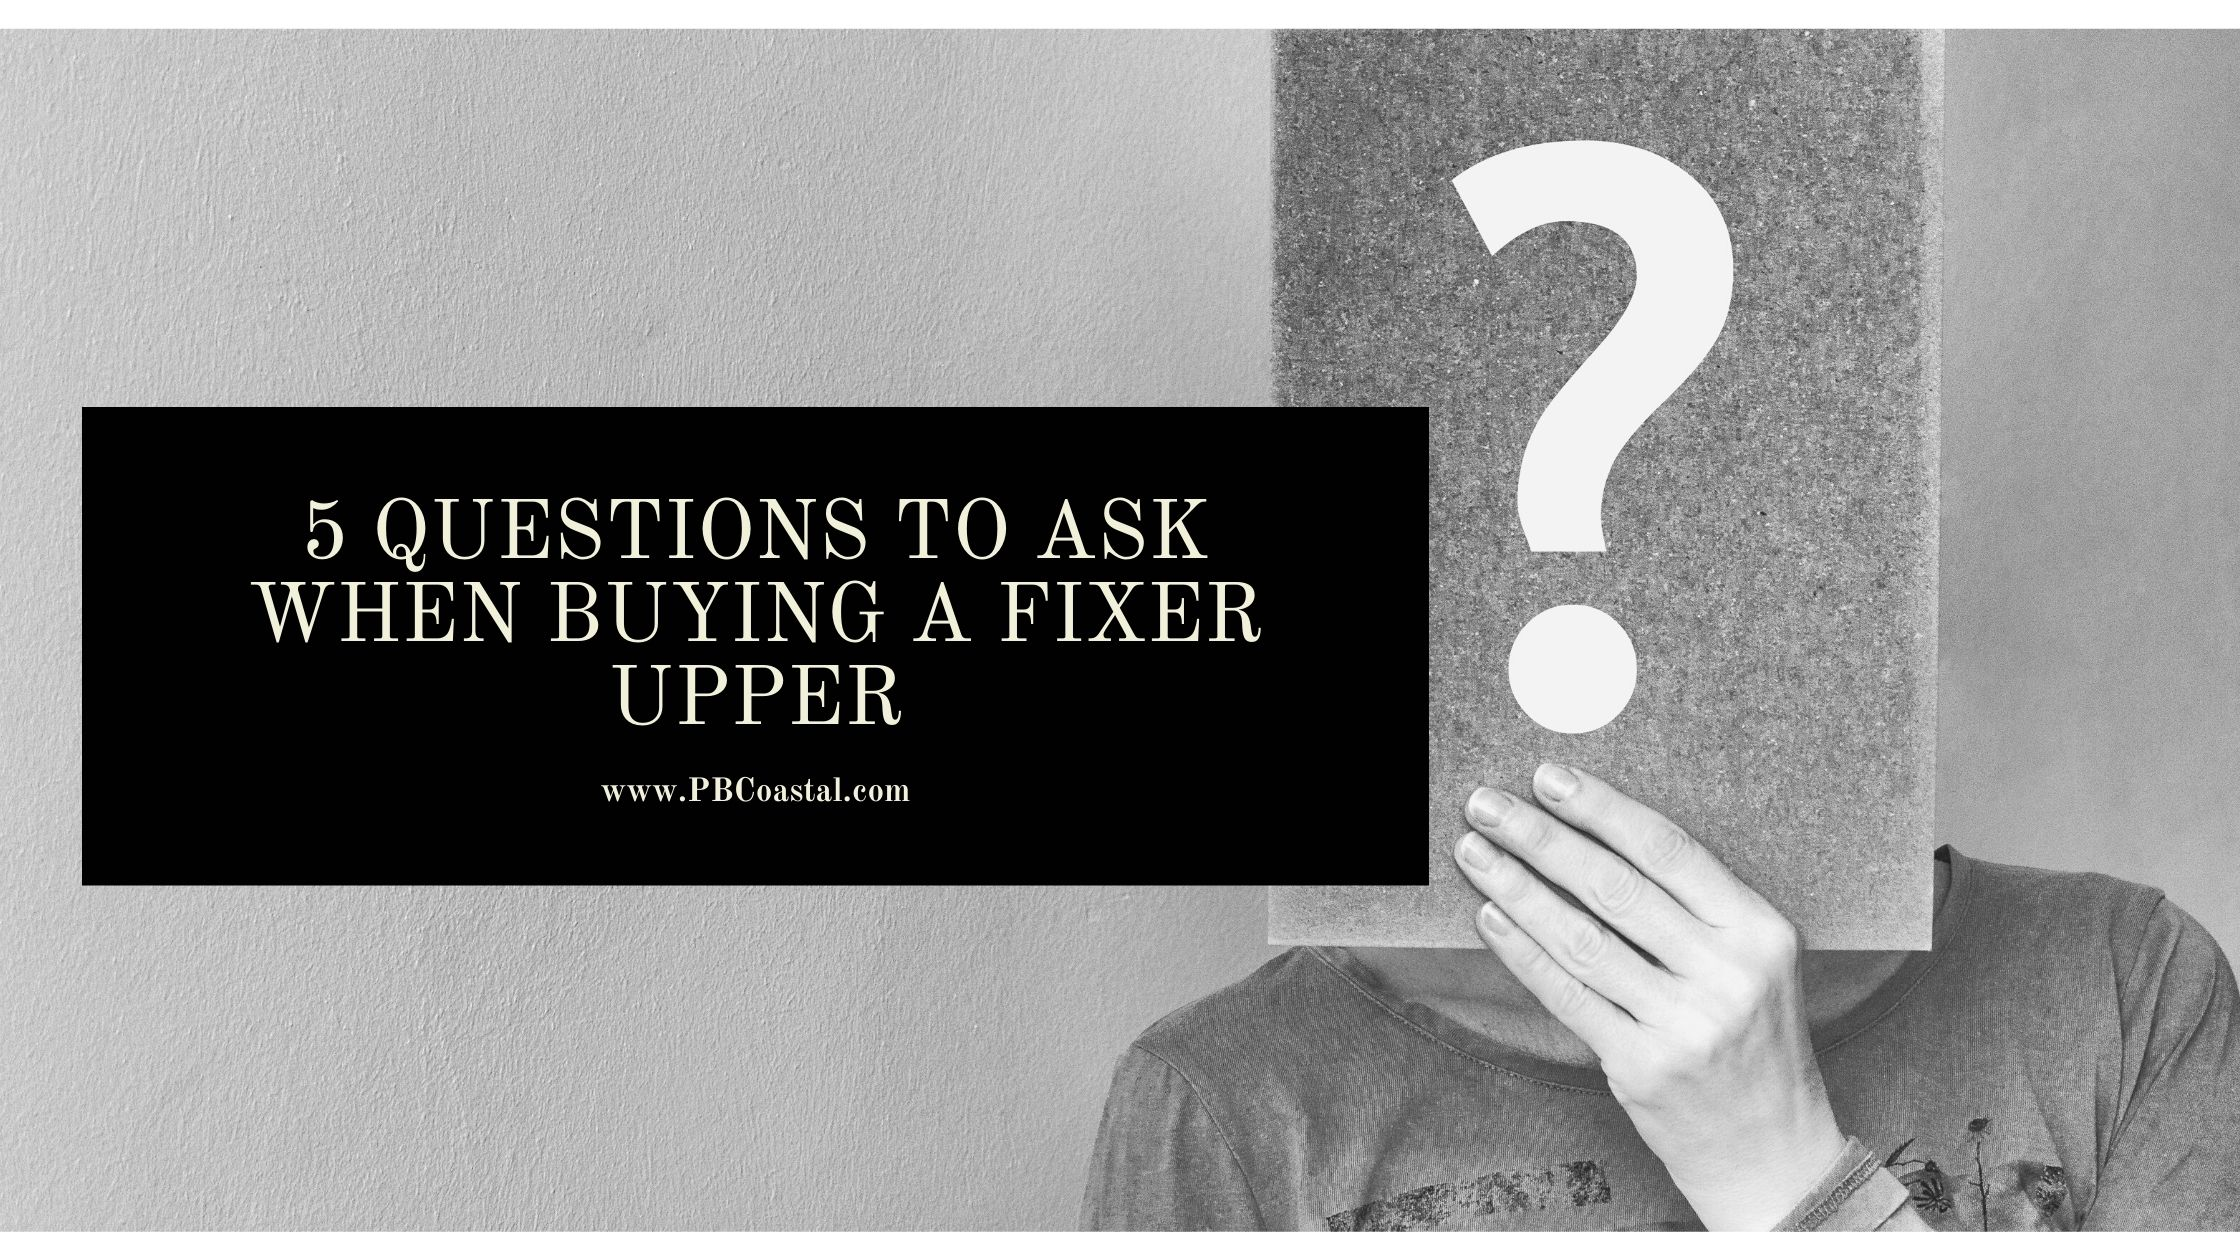 5 Questions to Ask When Buying a Fixer Upper